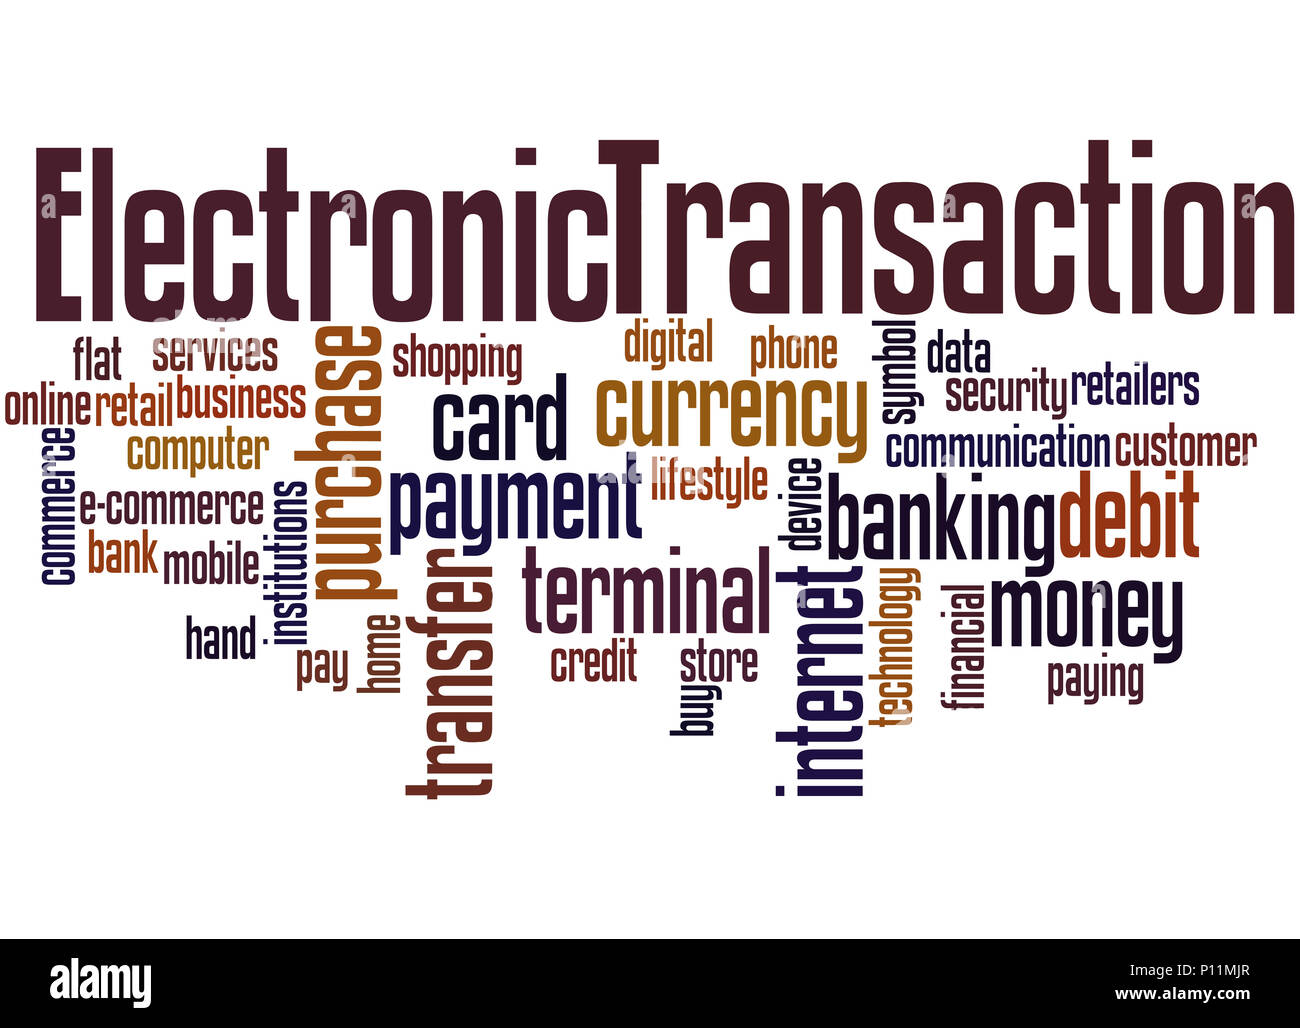 Electronic Transaction, word cloud concept on white background. - Stock Image